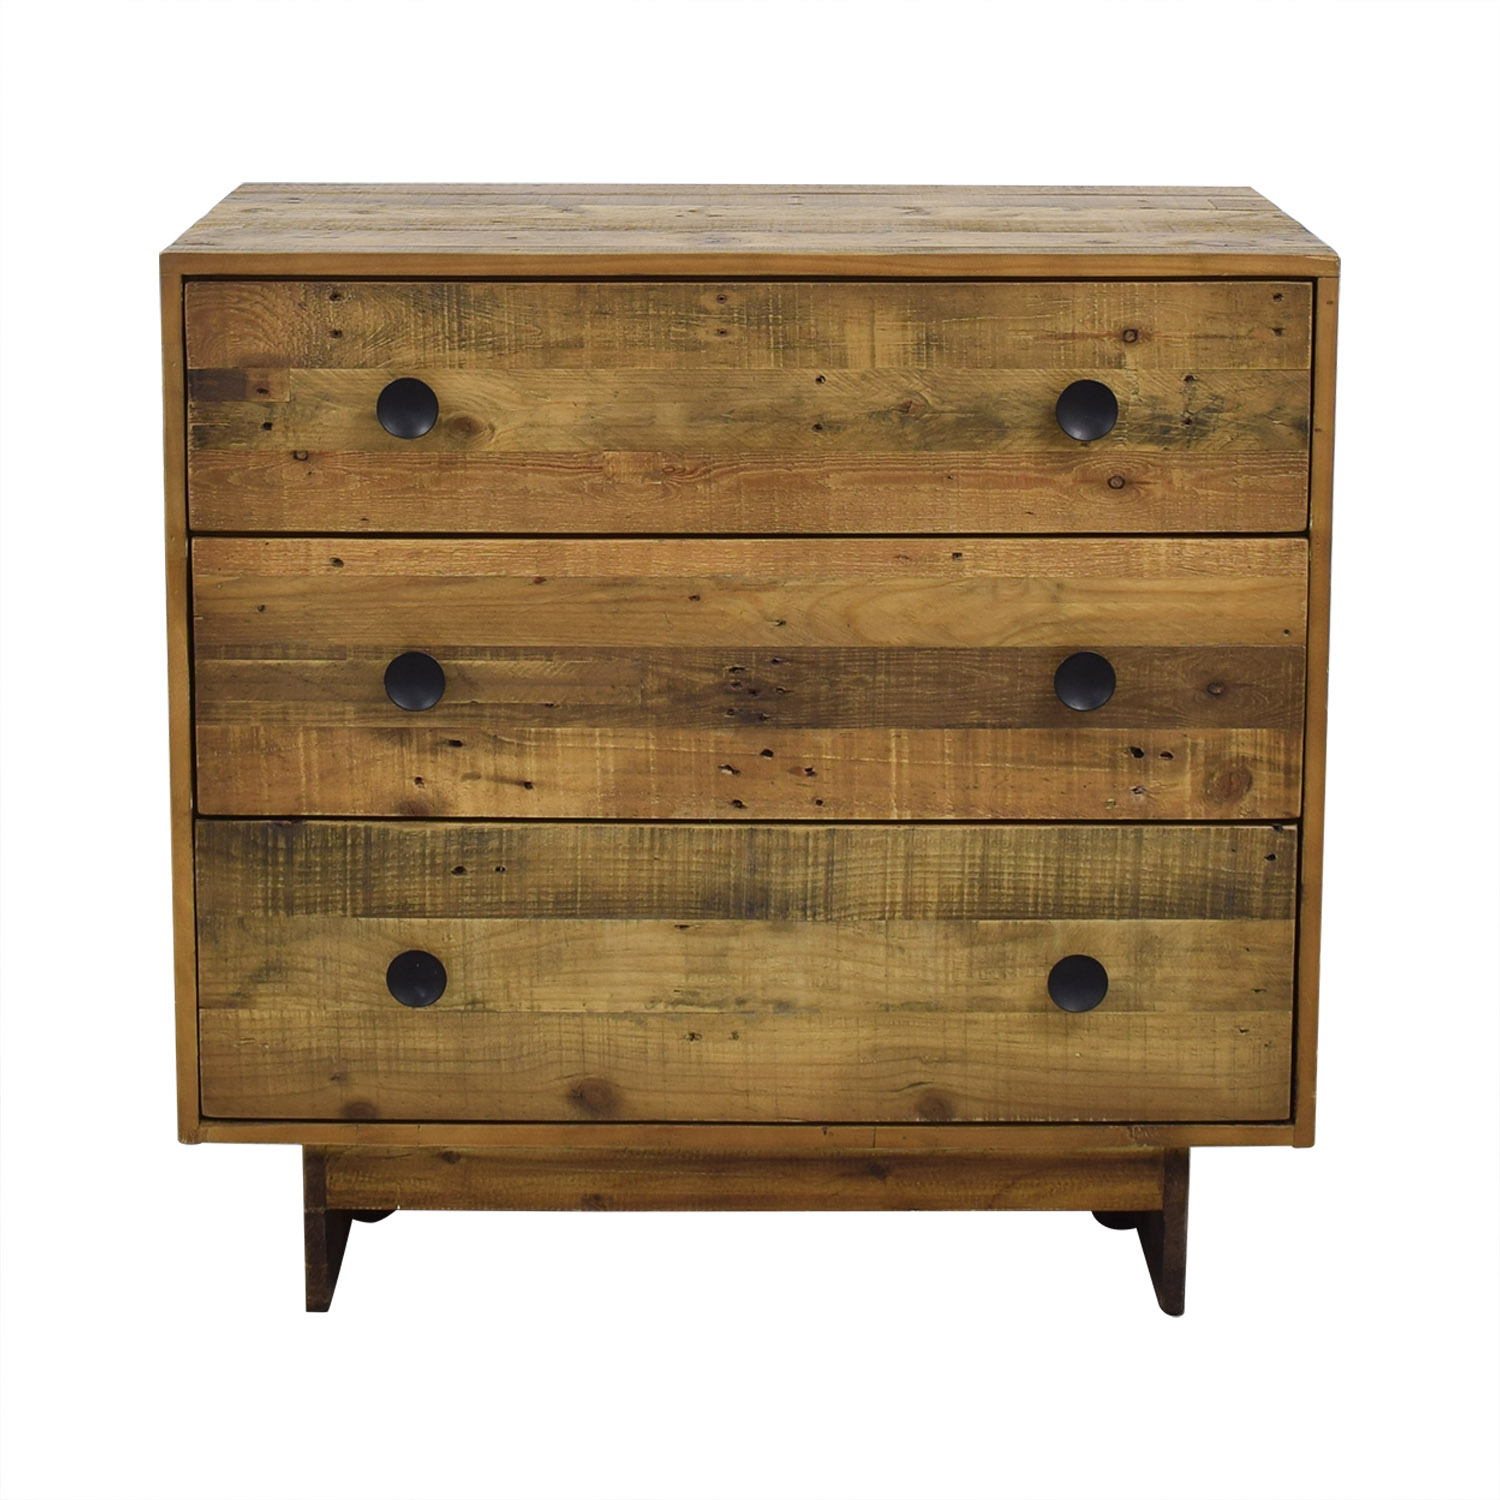 West Elm West Elm Emmerson Reclaimed Wood Three Drawer Dresser